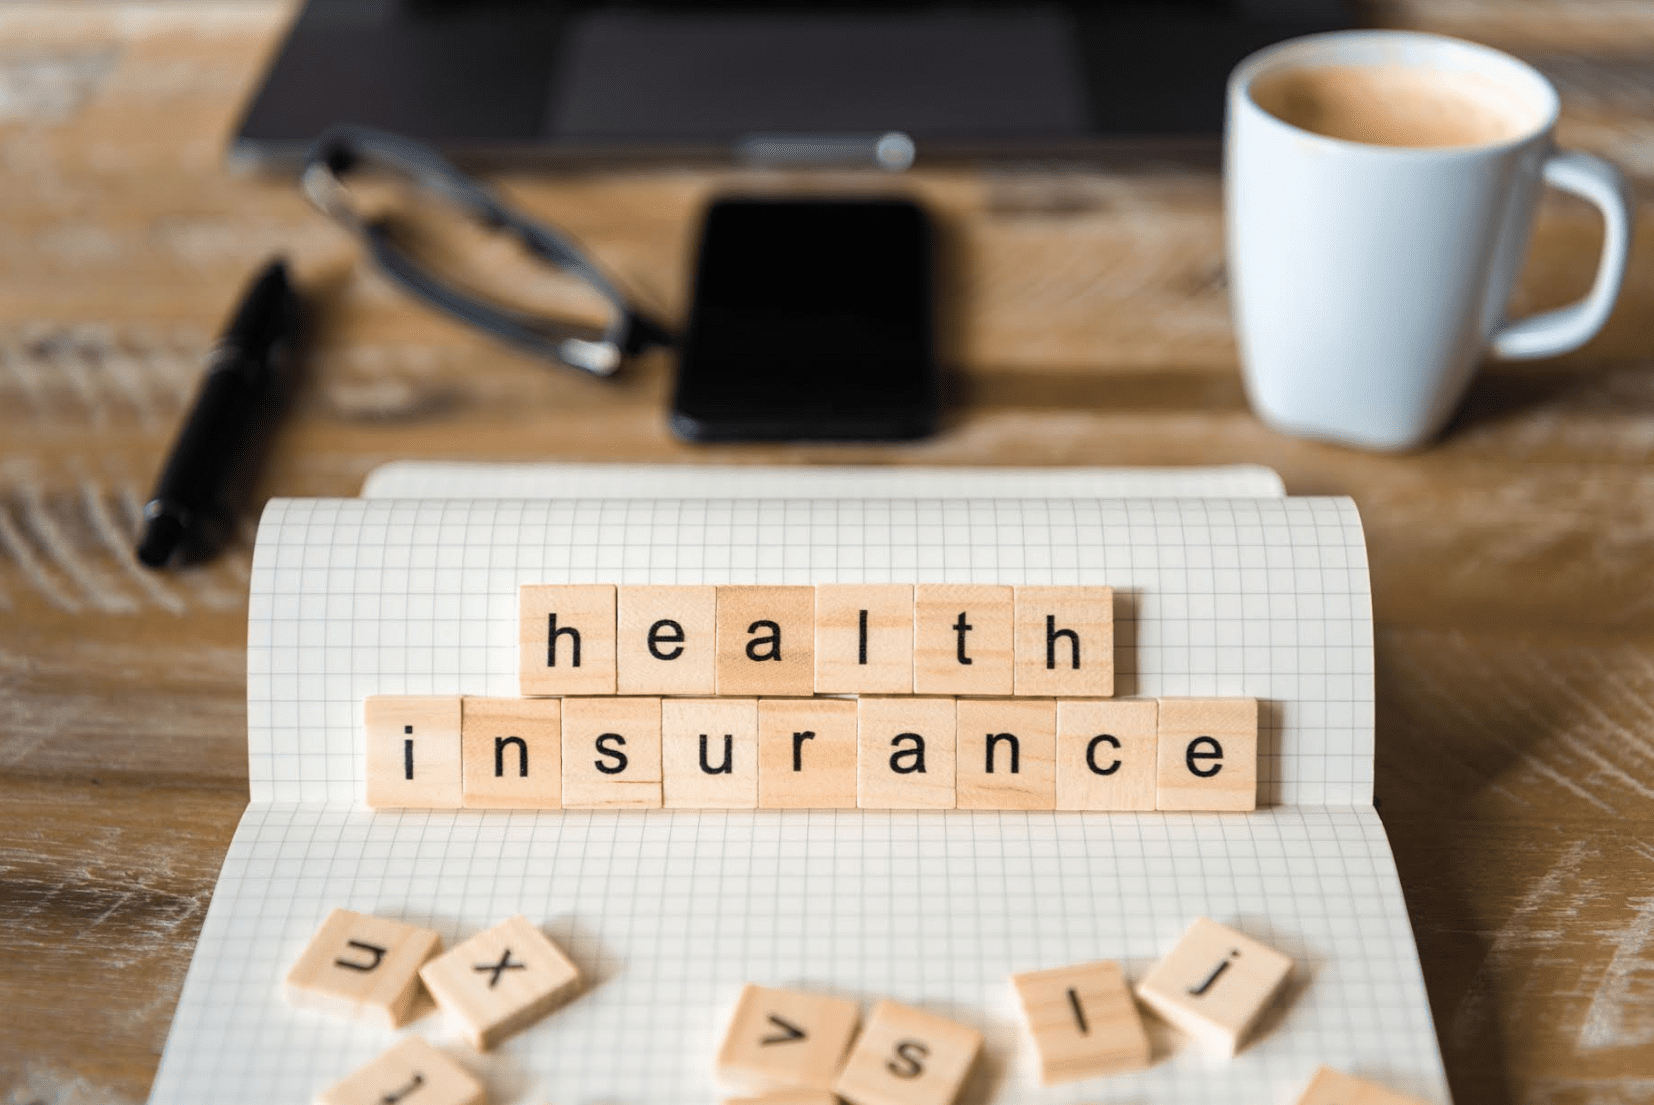 letters spelling out health insurance